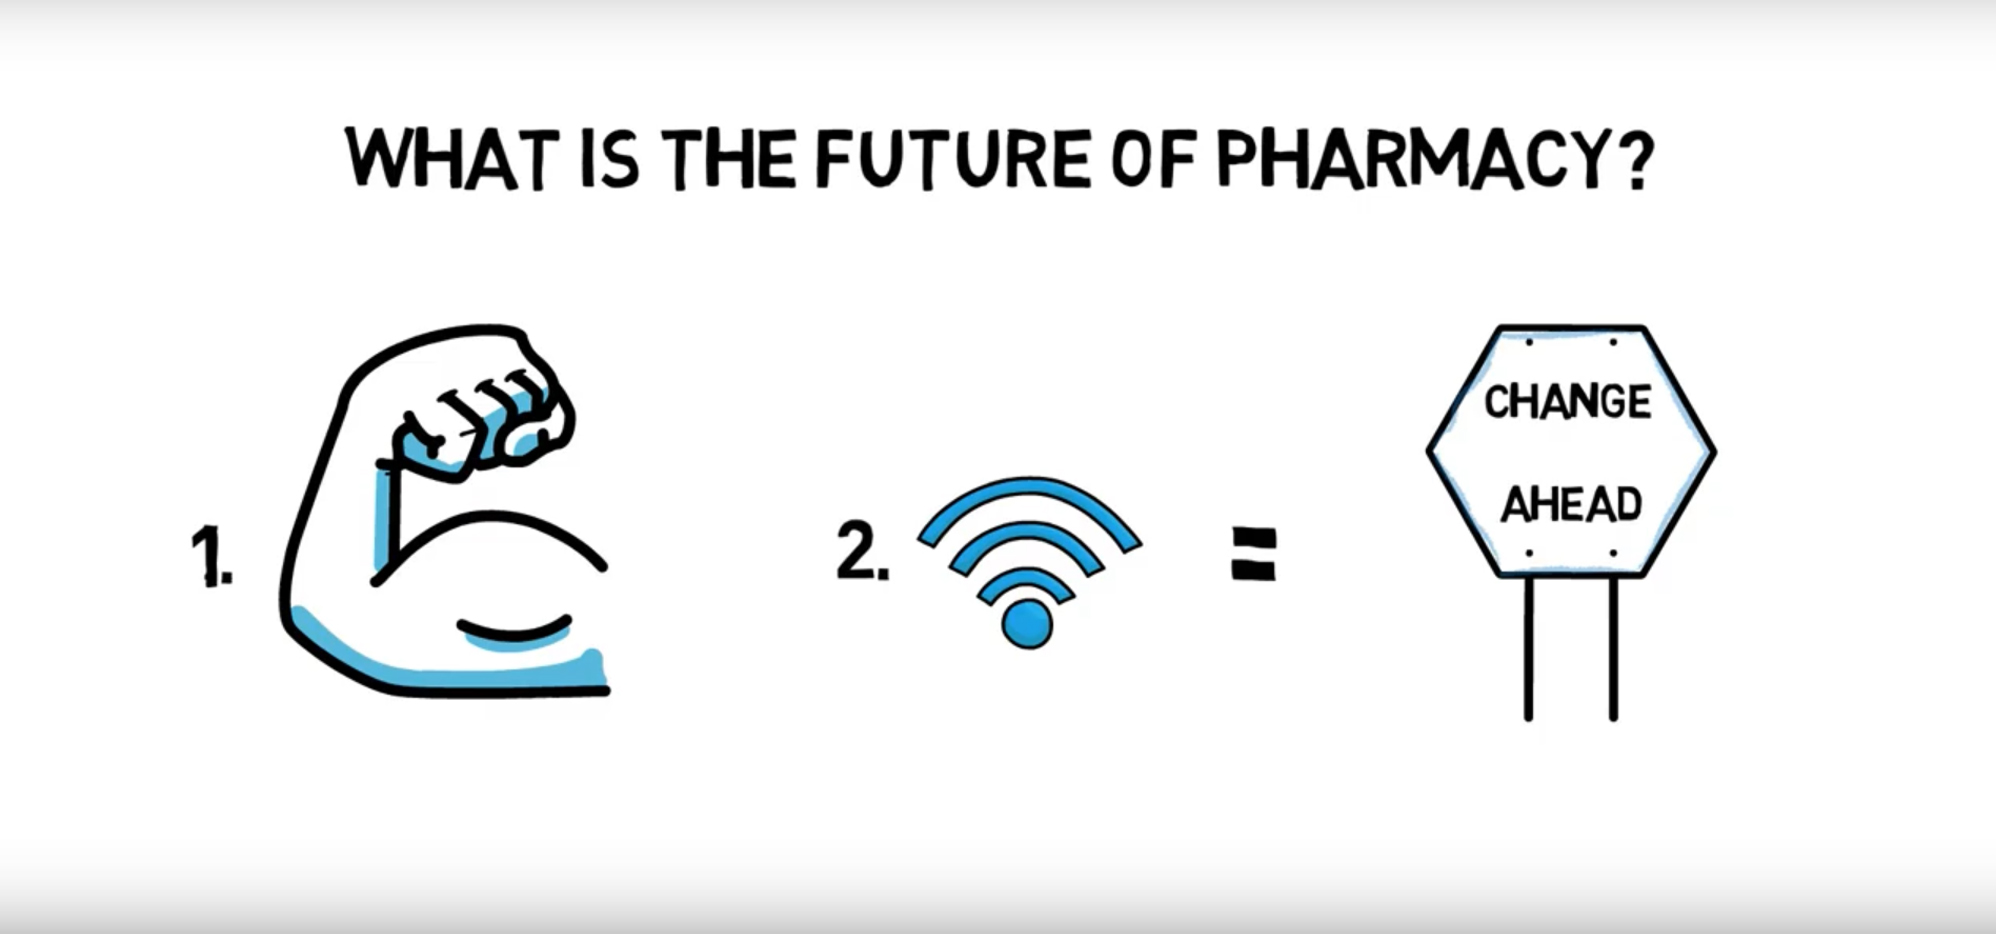 What is the future of pharmacy? 1. Flexing arm icon. 2. Connected icon = sign that says change ahead.